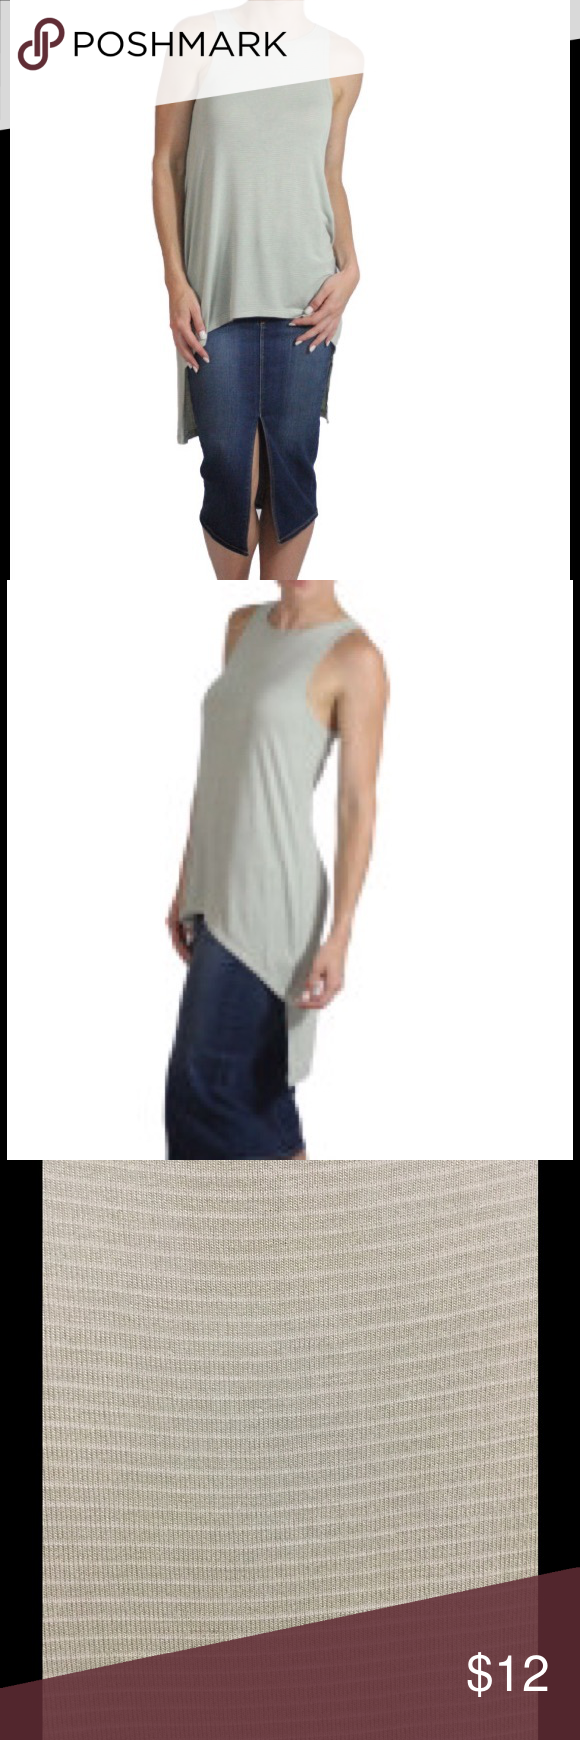 On the Road tank High low. Has tiny white strips. Never worn. All sales final. No trades. Price is firm. Marked at 75% off. On the Road Tops Tank Tops